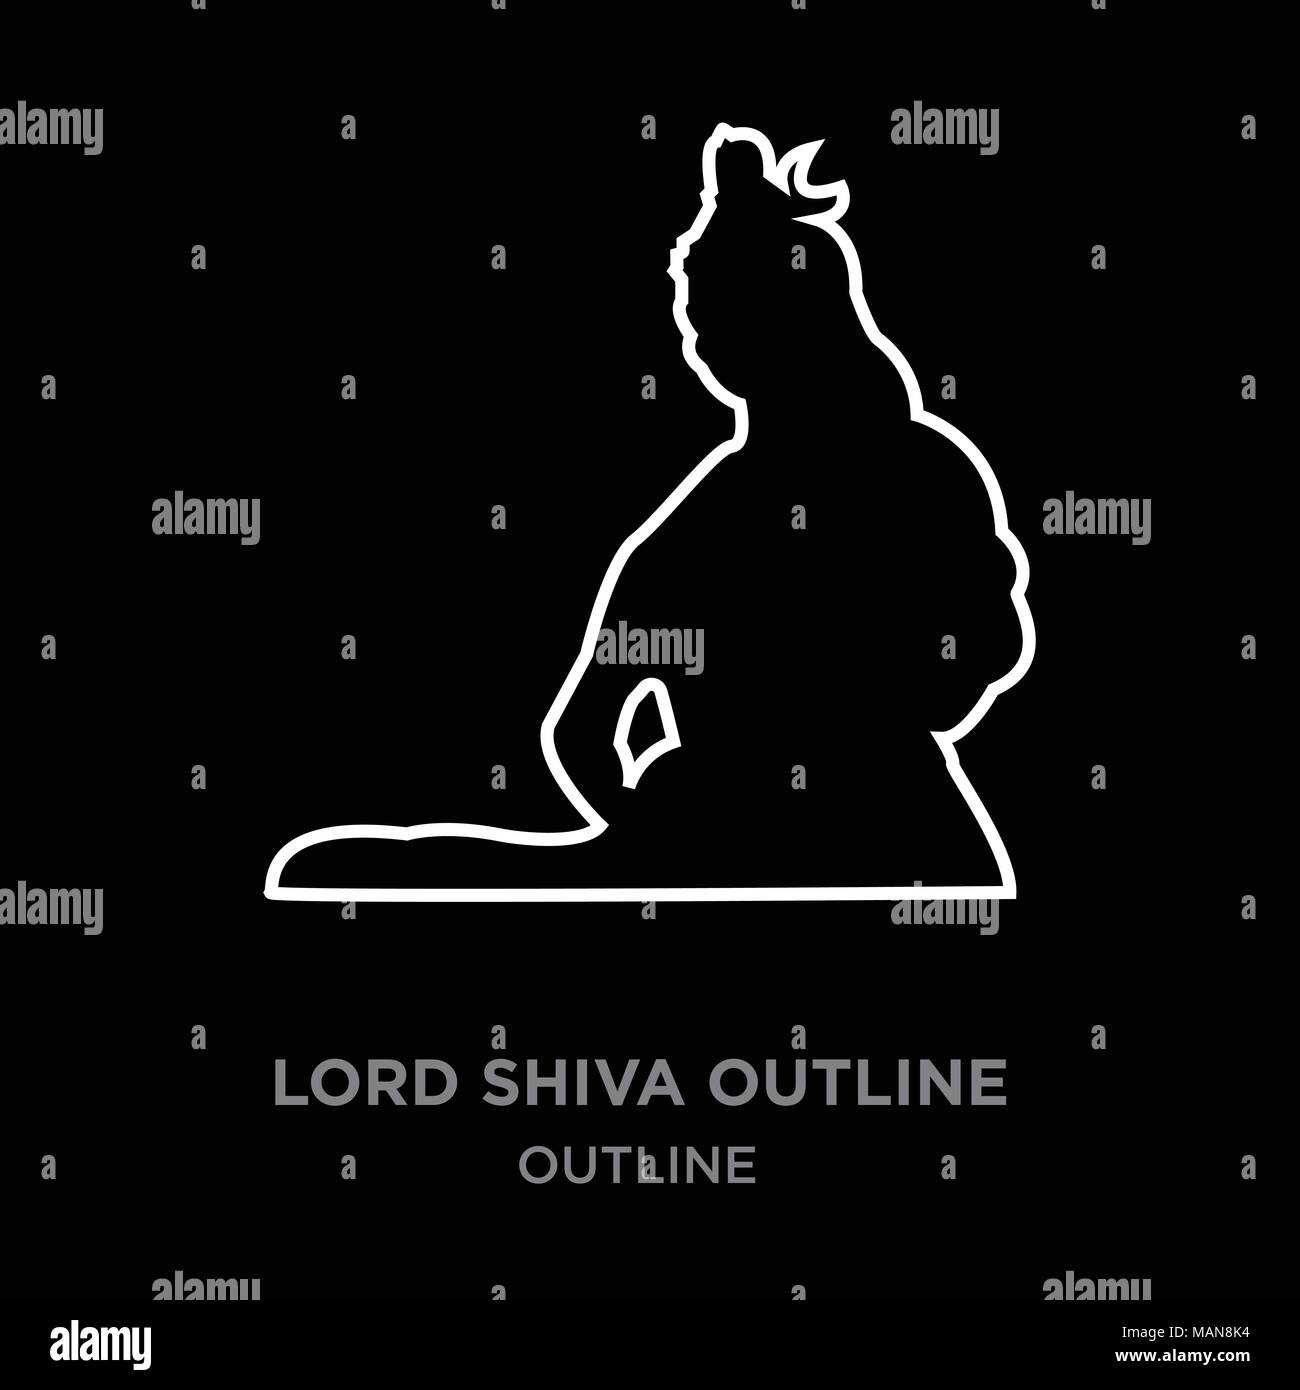 Lord shiva black and white stock photos images alamy